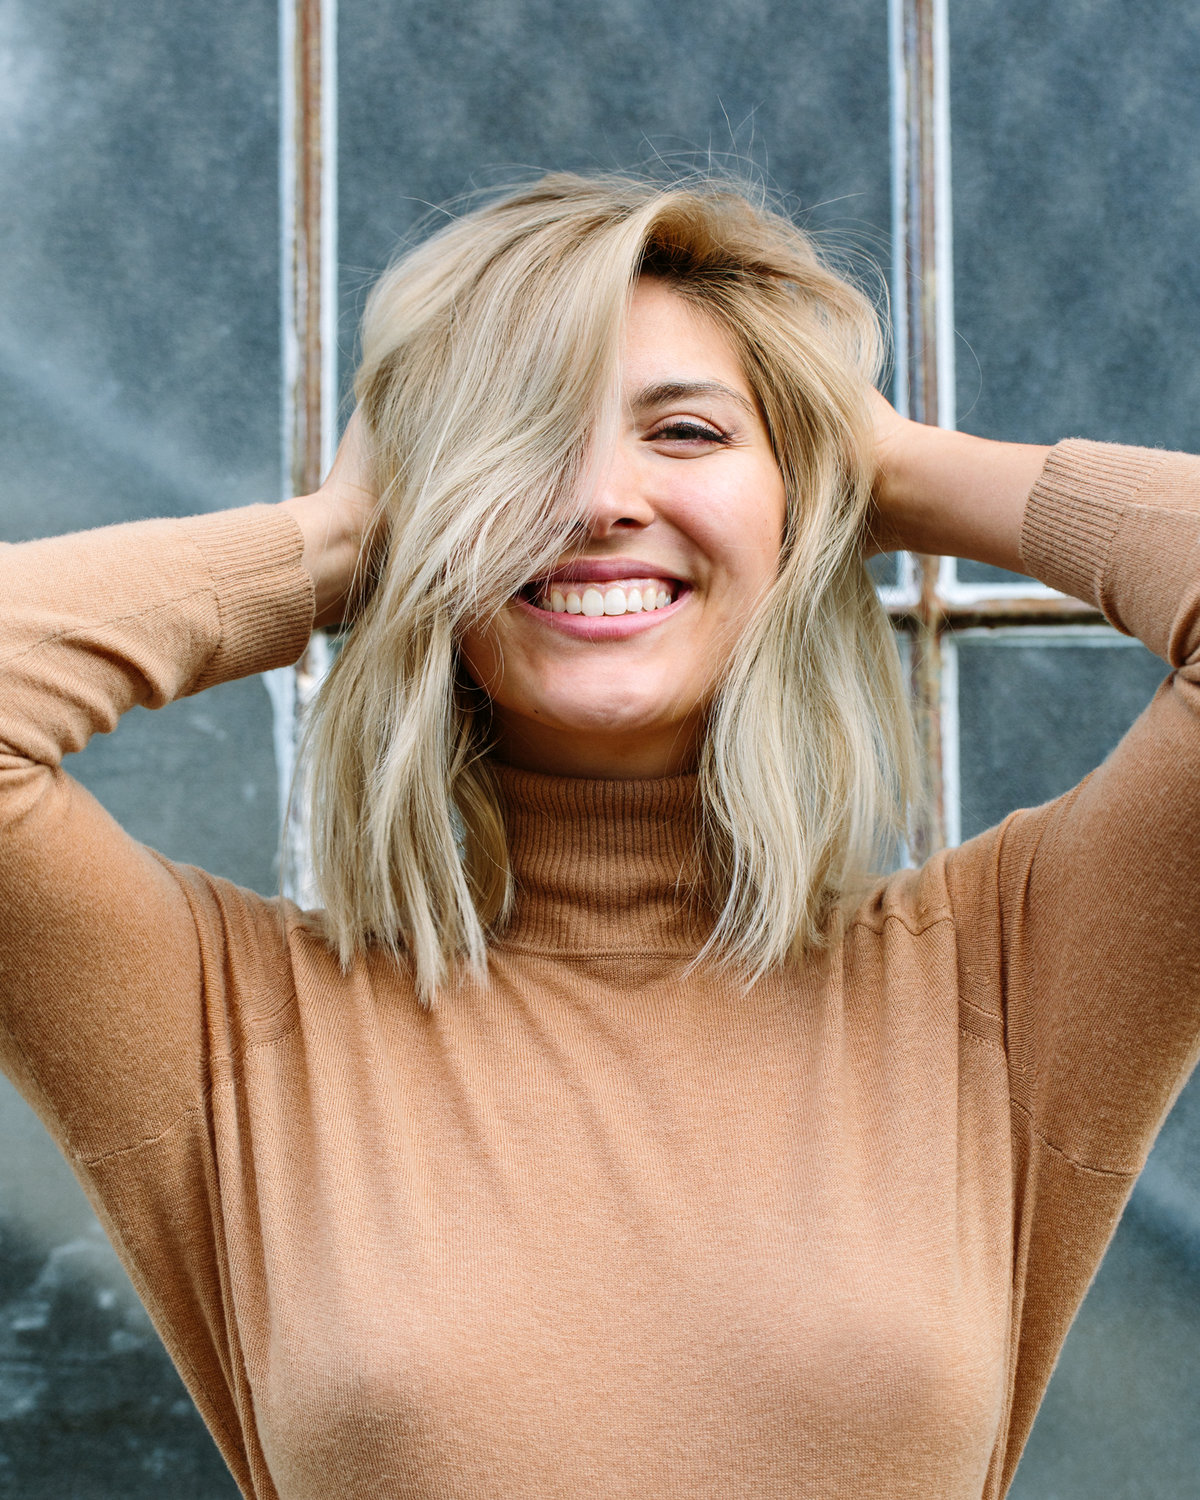 blonde woman in brown turtle neck smiling at camera